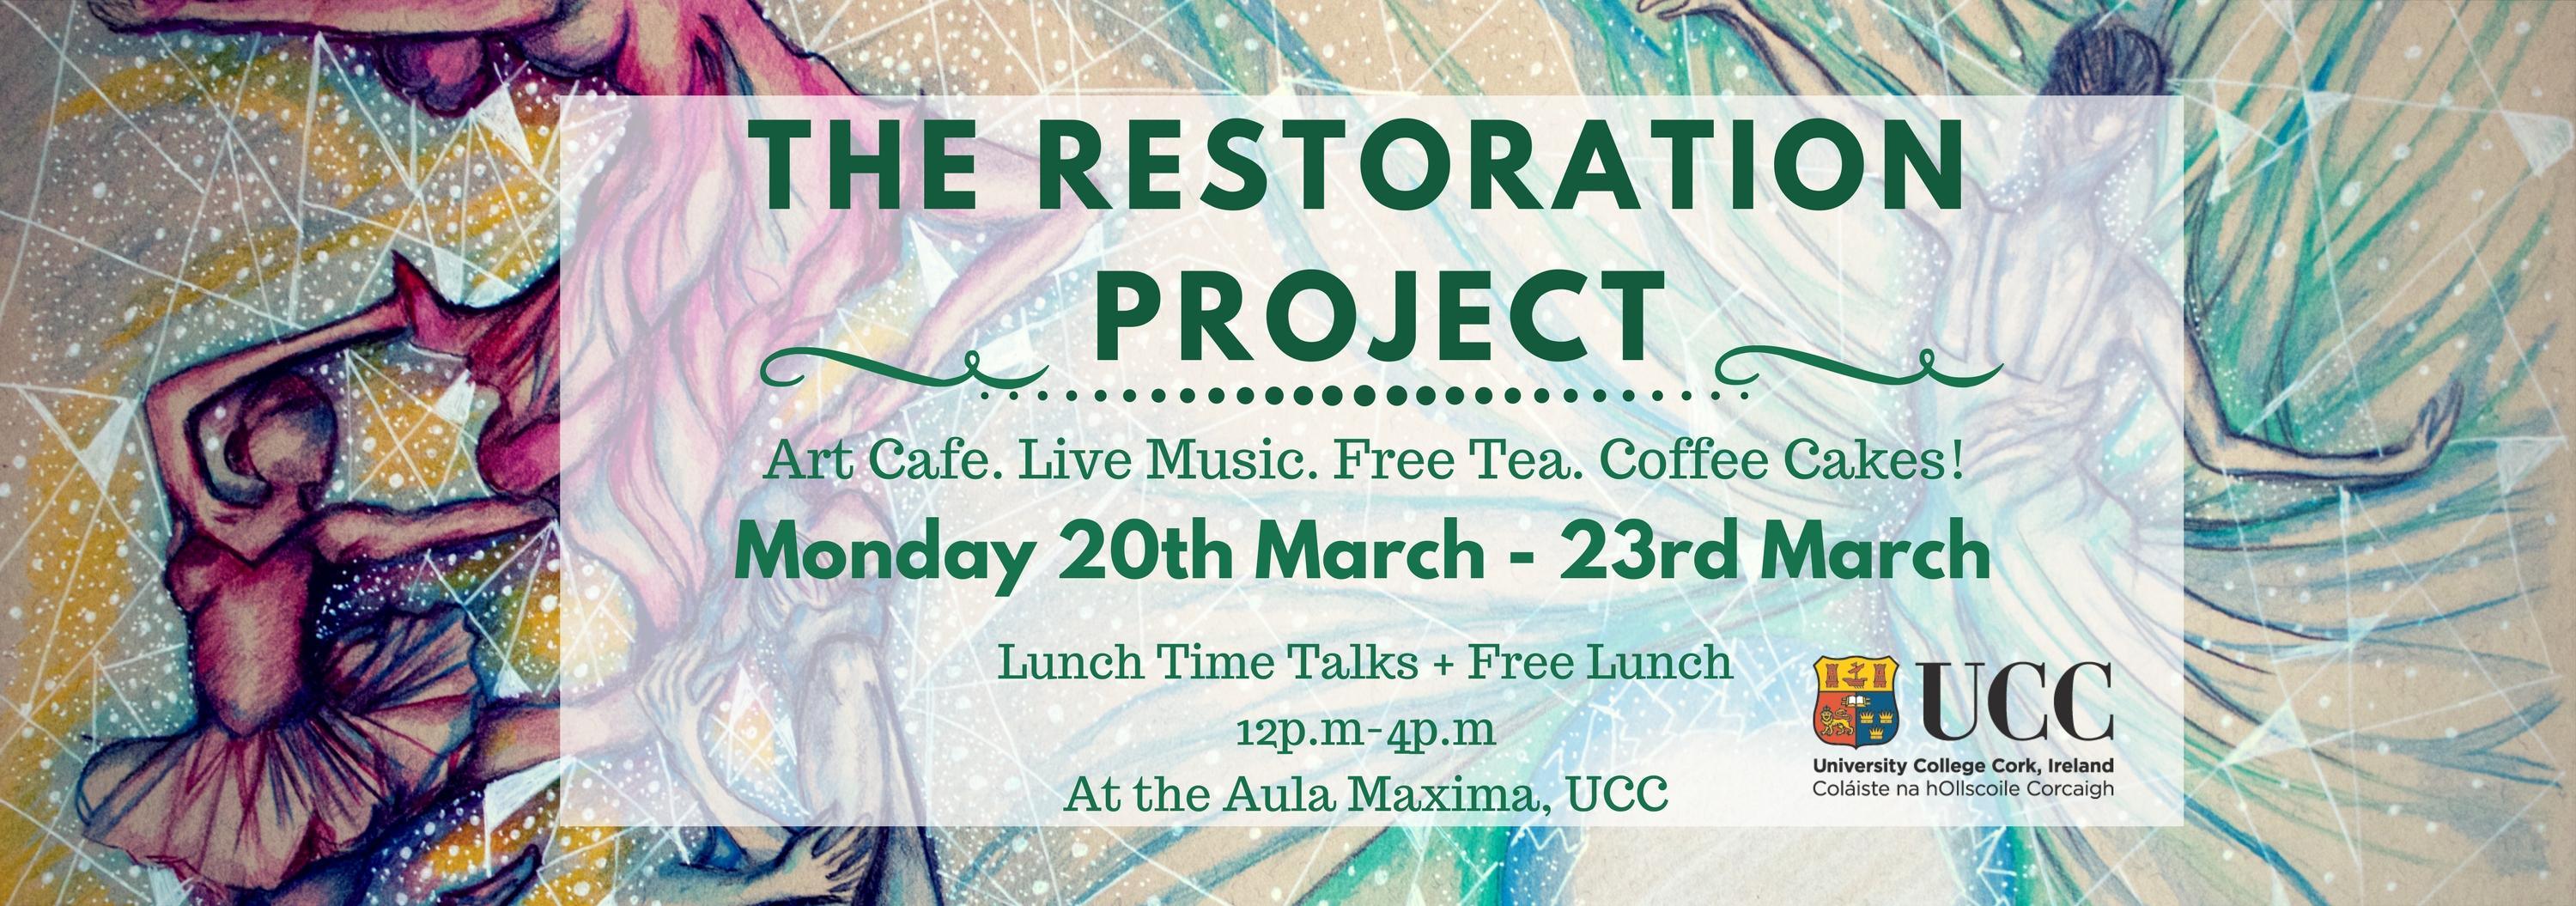 the restoration pop-up art gallery and cafe space @ aula maxima